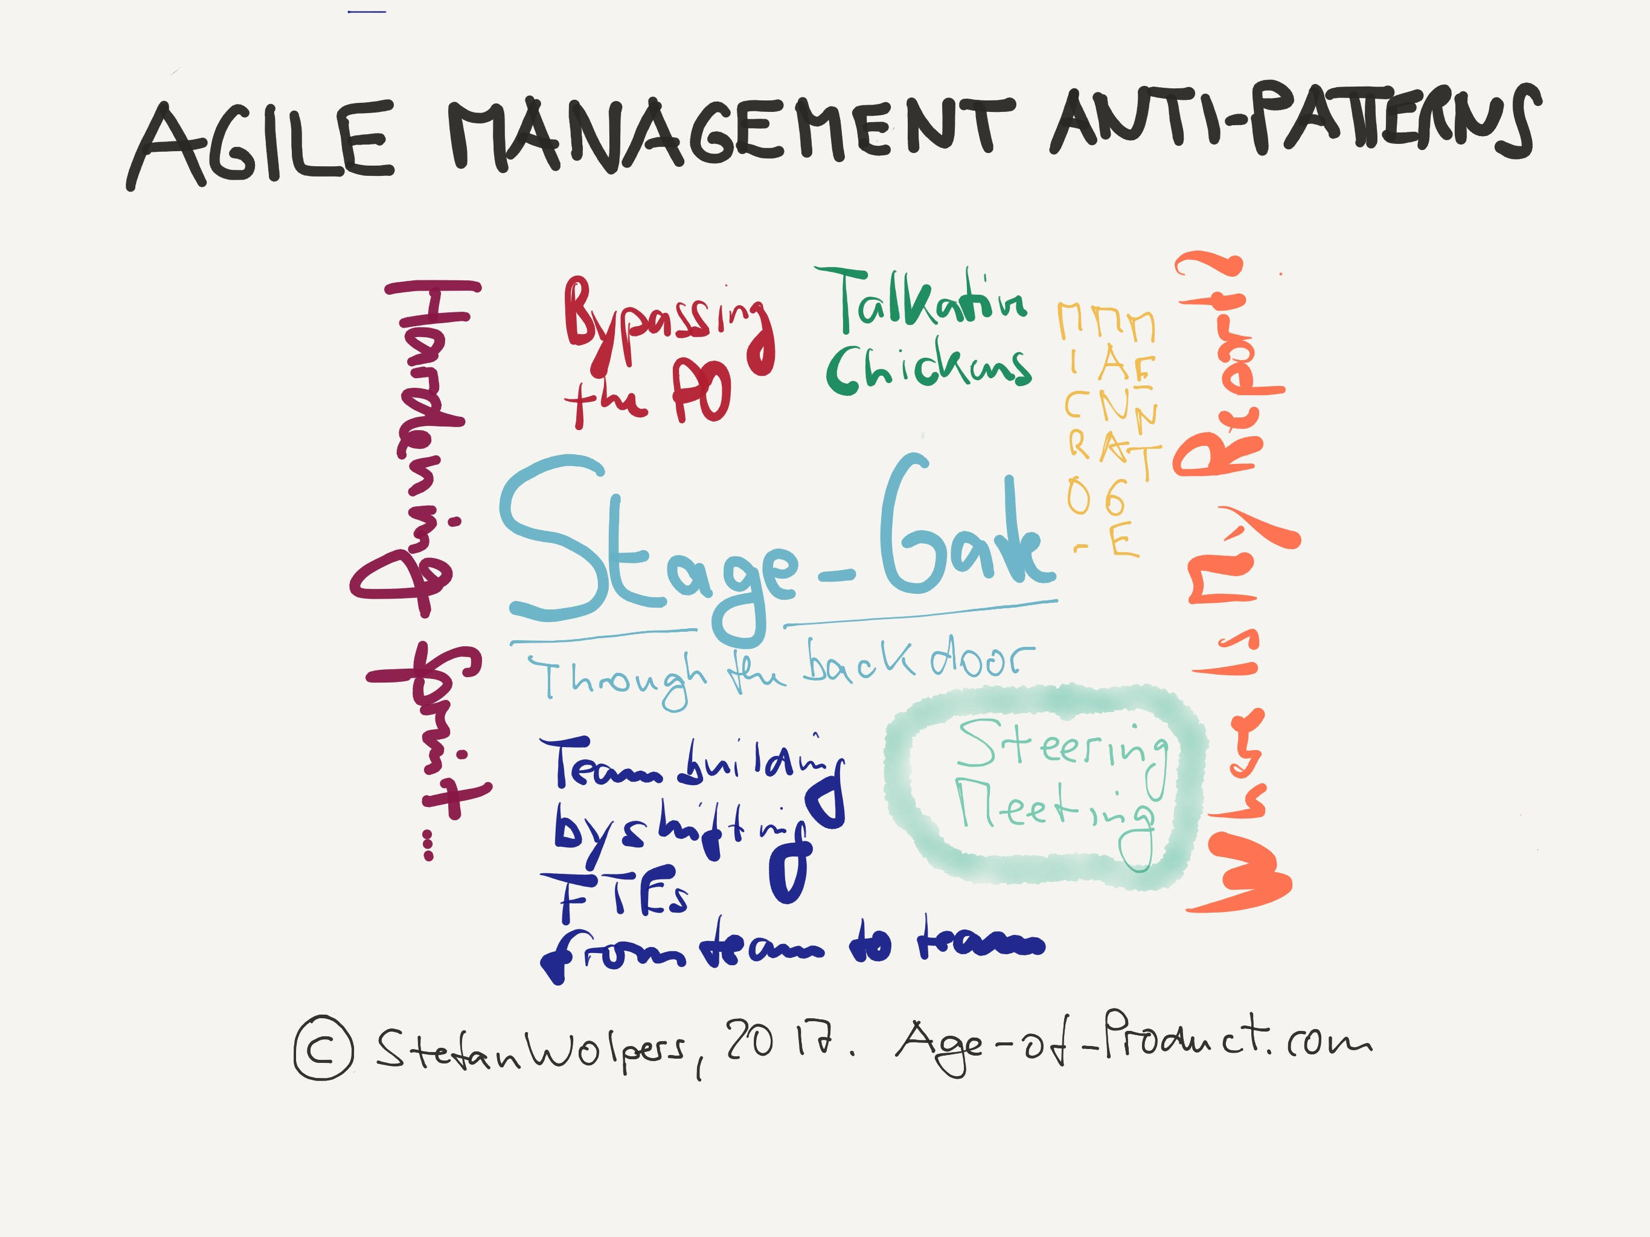 Age of Product: Agile Management Anti-Patterns — An Introduction